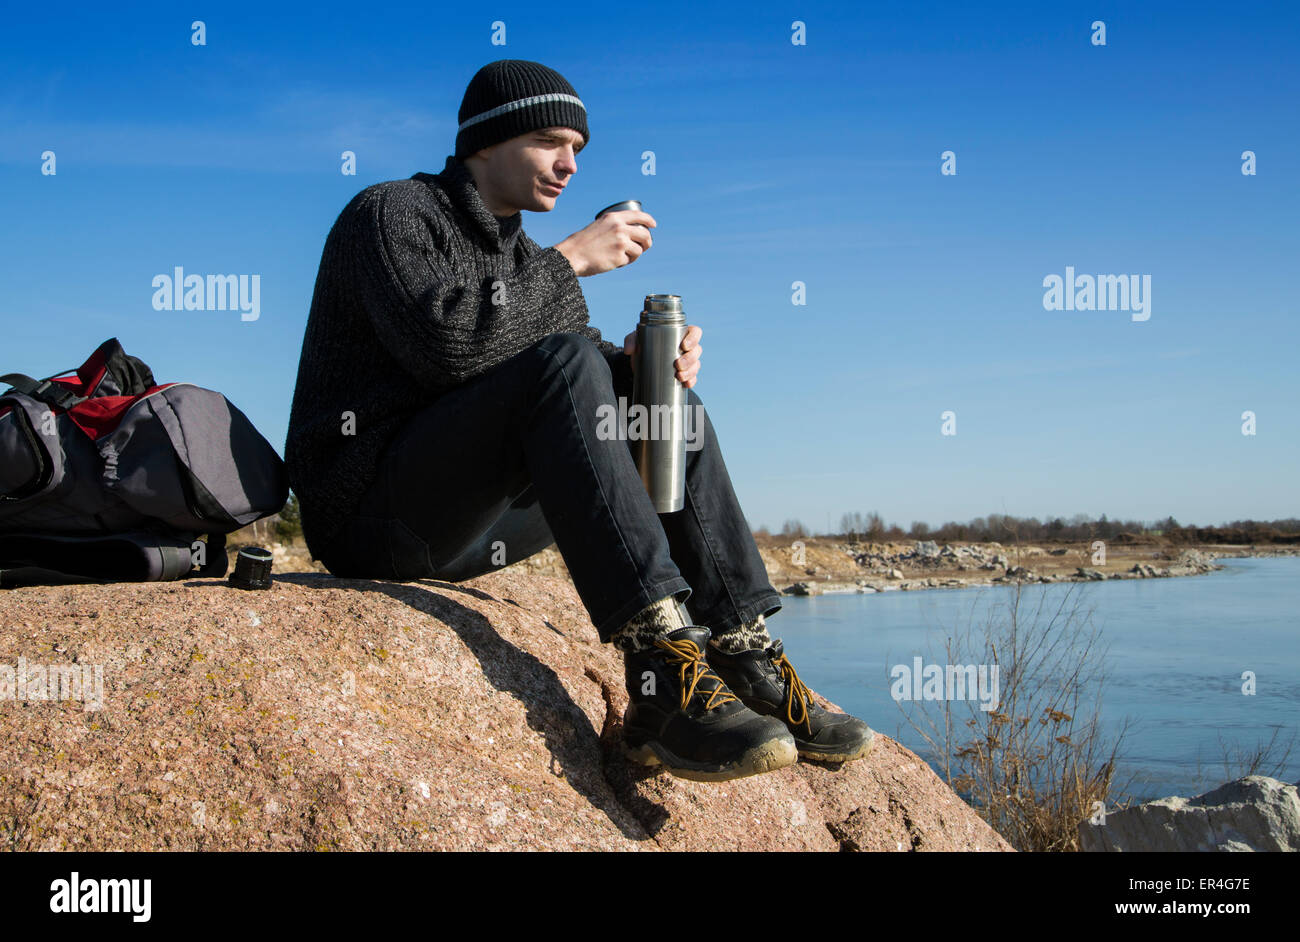 A traveler took a seat to rest - Stock Image